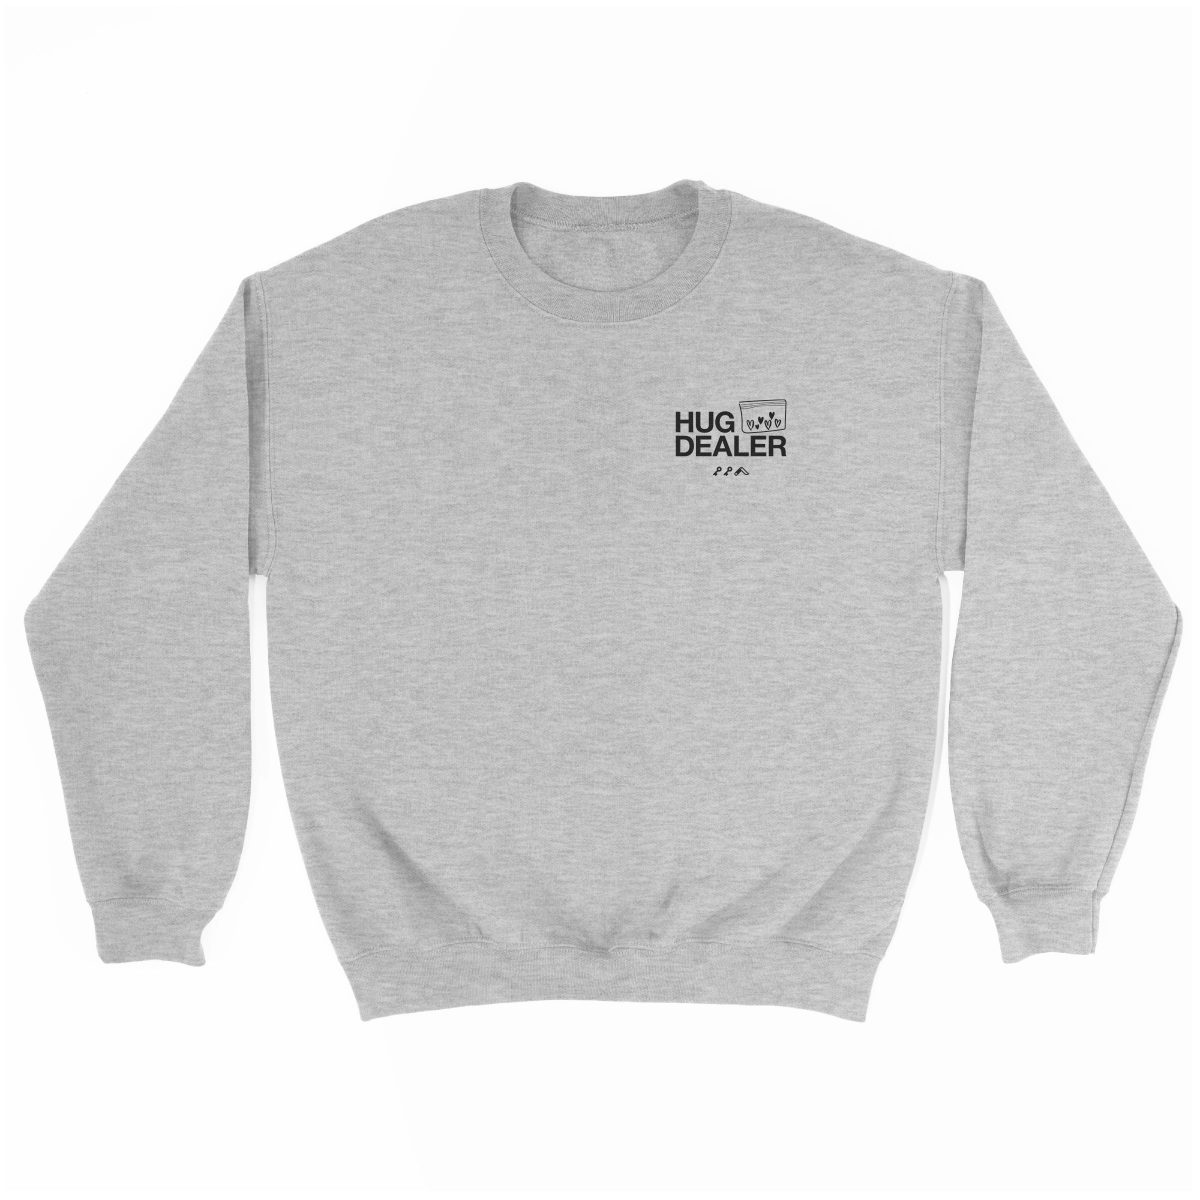 HUG DEALER sweatshirt in grey by kikicutt sweatshirt store